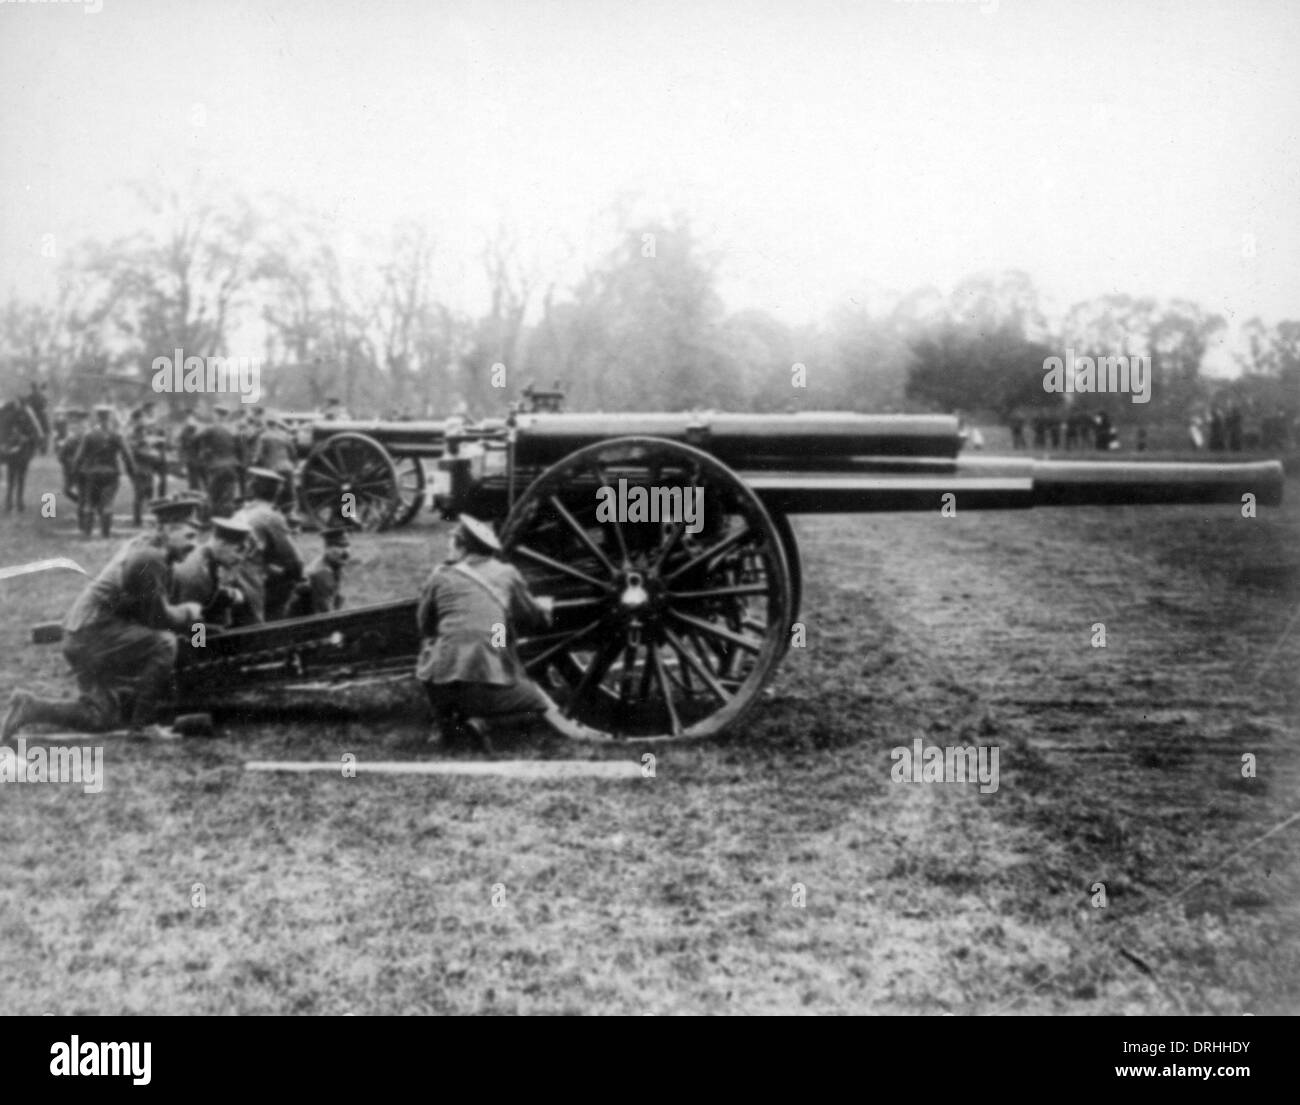 Soldiers with field gun, WW1 - Stock Image